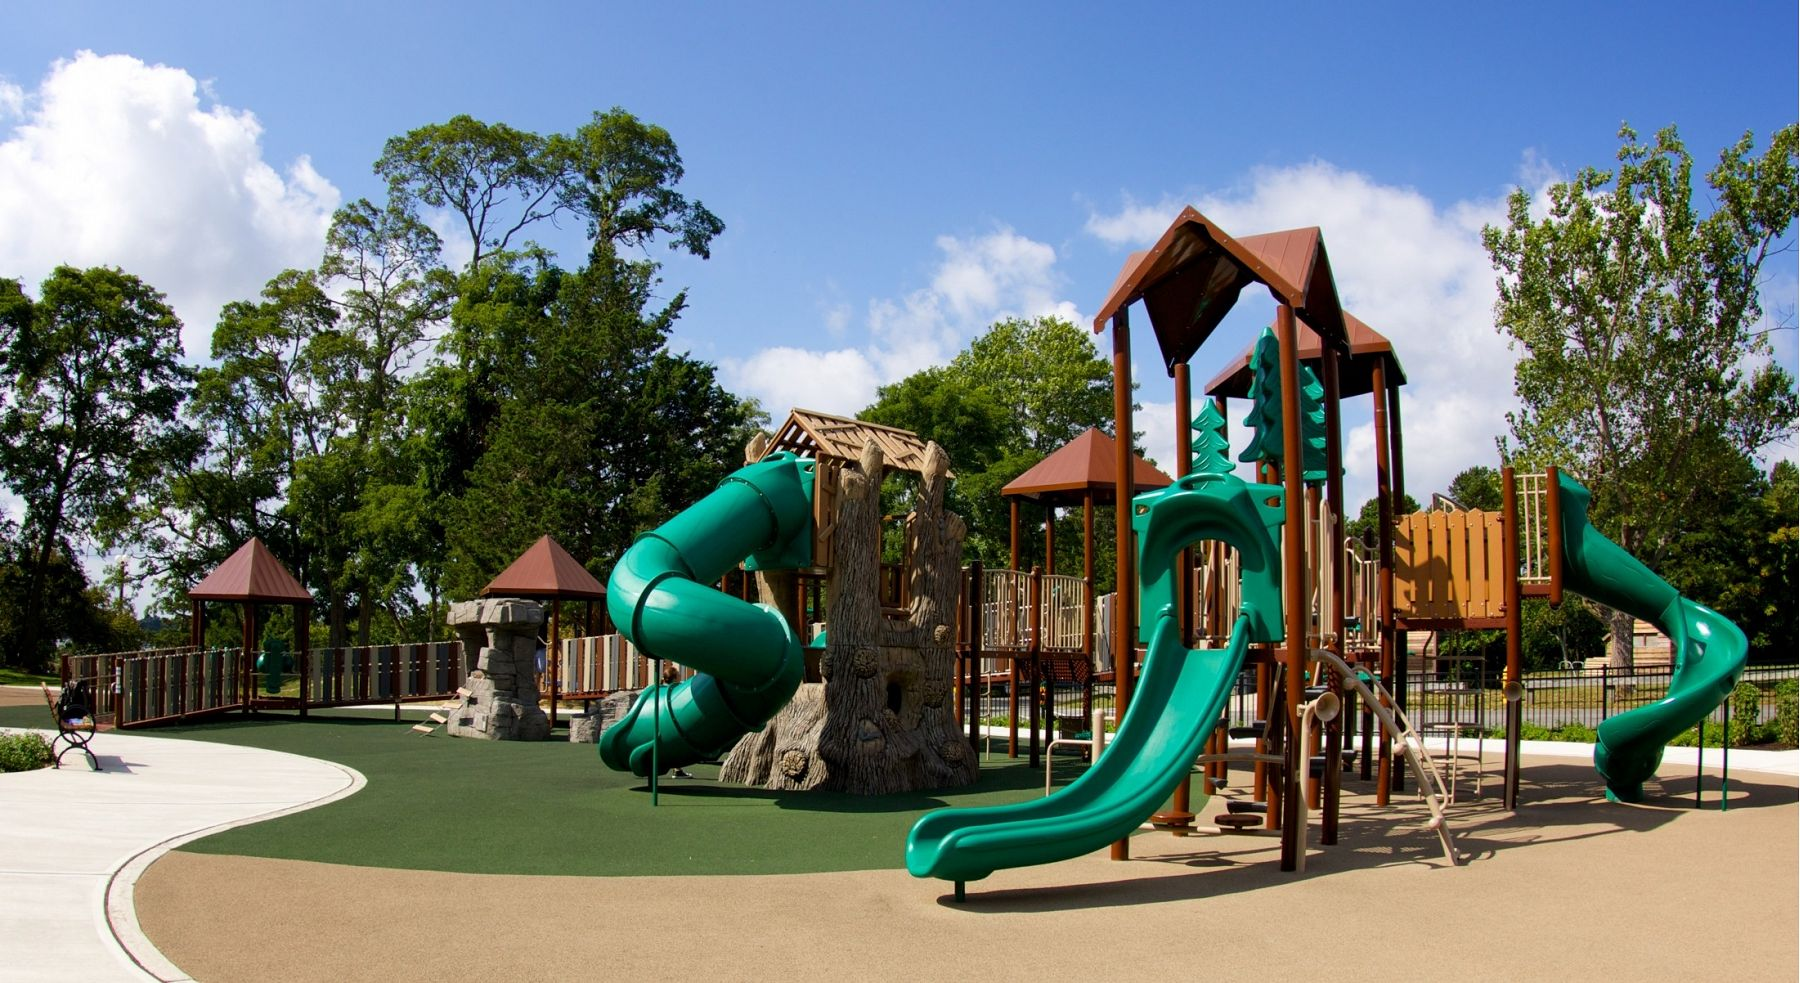 Playground Slide Design